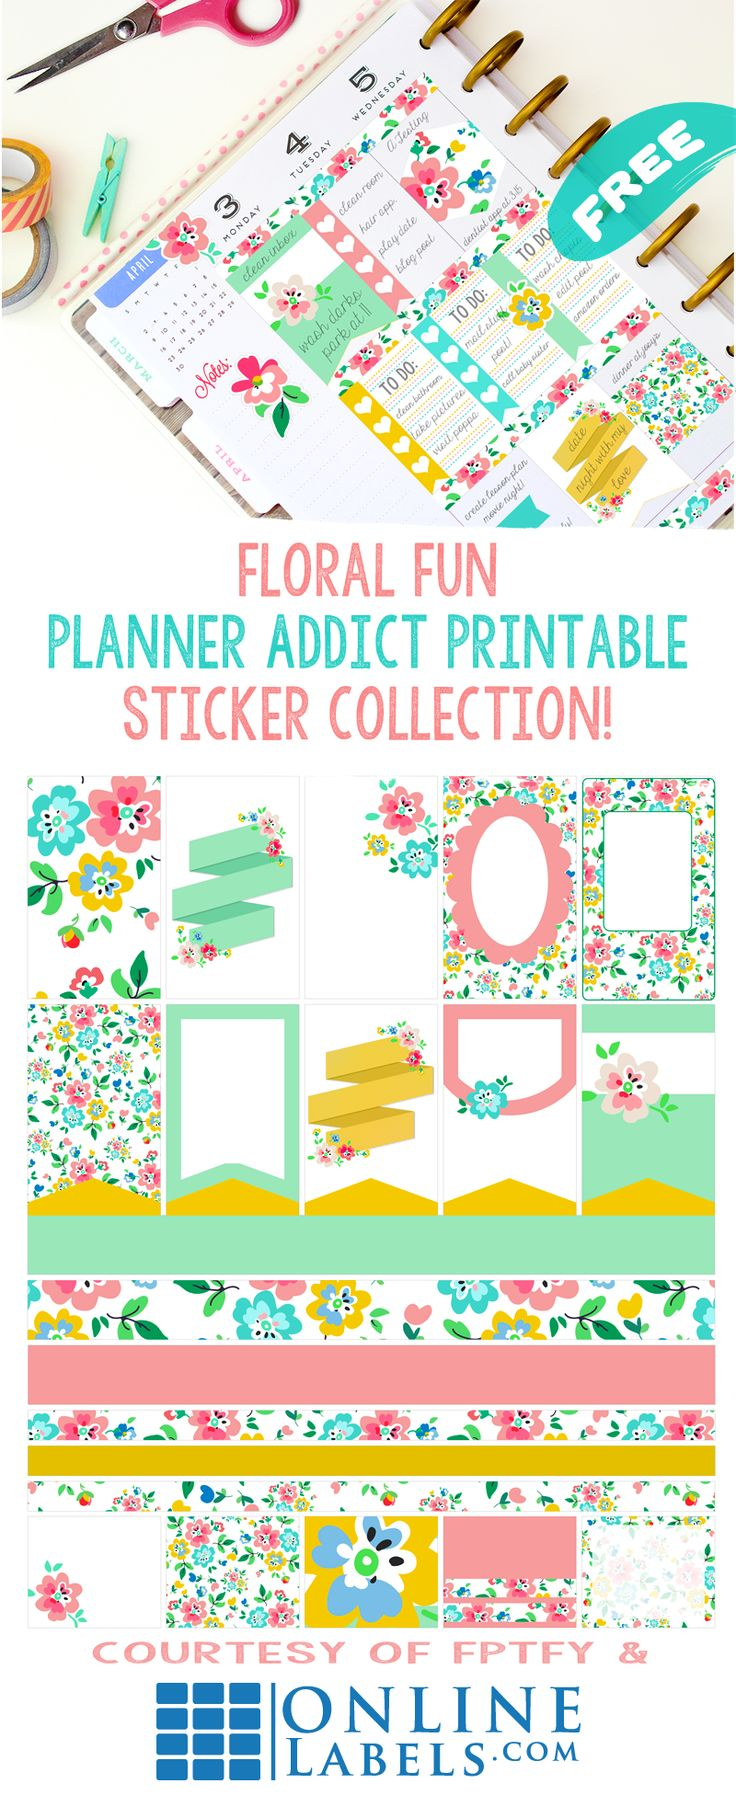 Free Planner Printables-Floral Fun! - Free Pretty Things For You